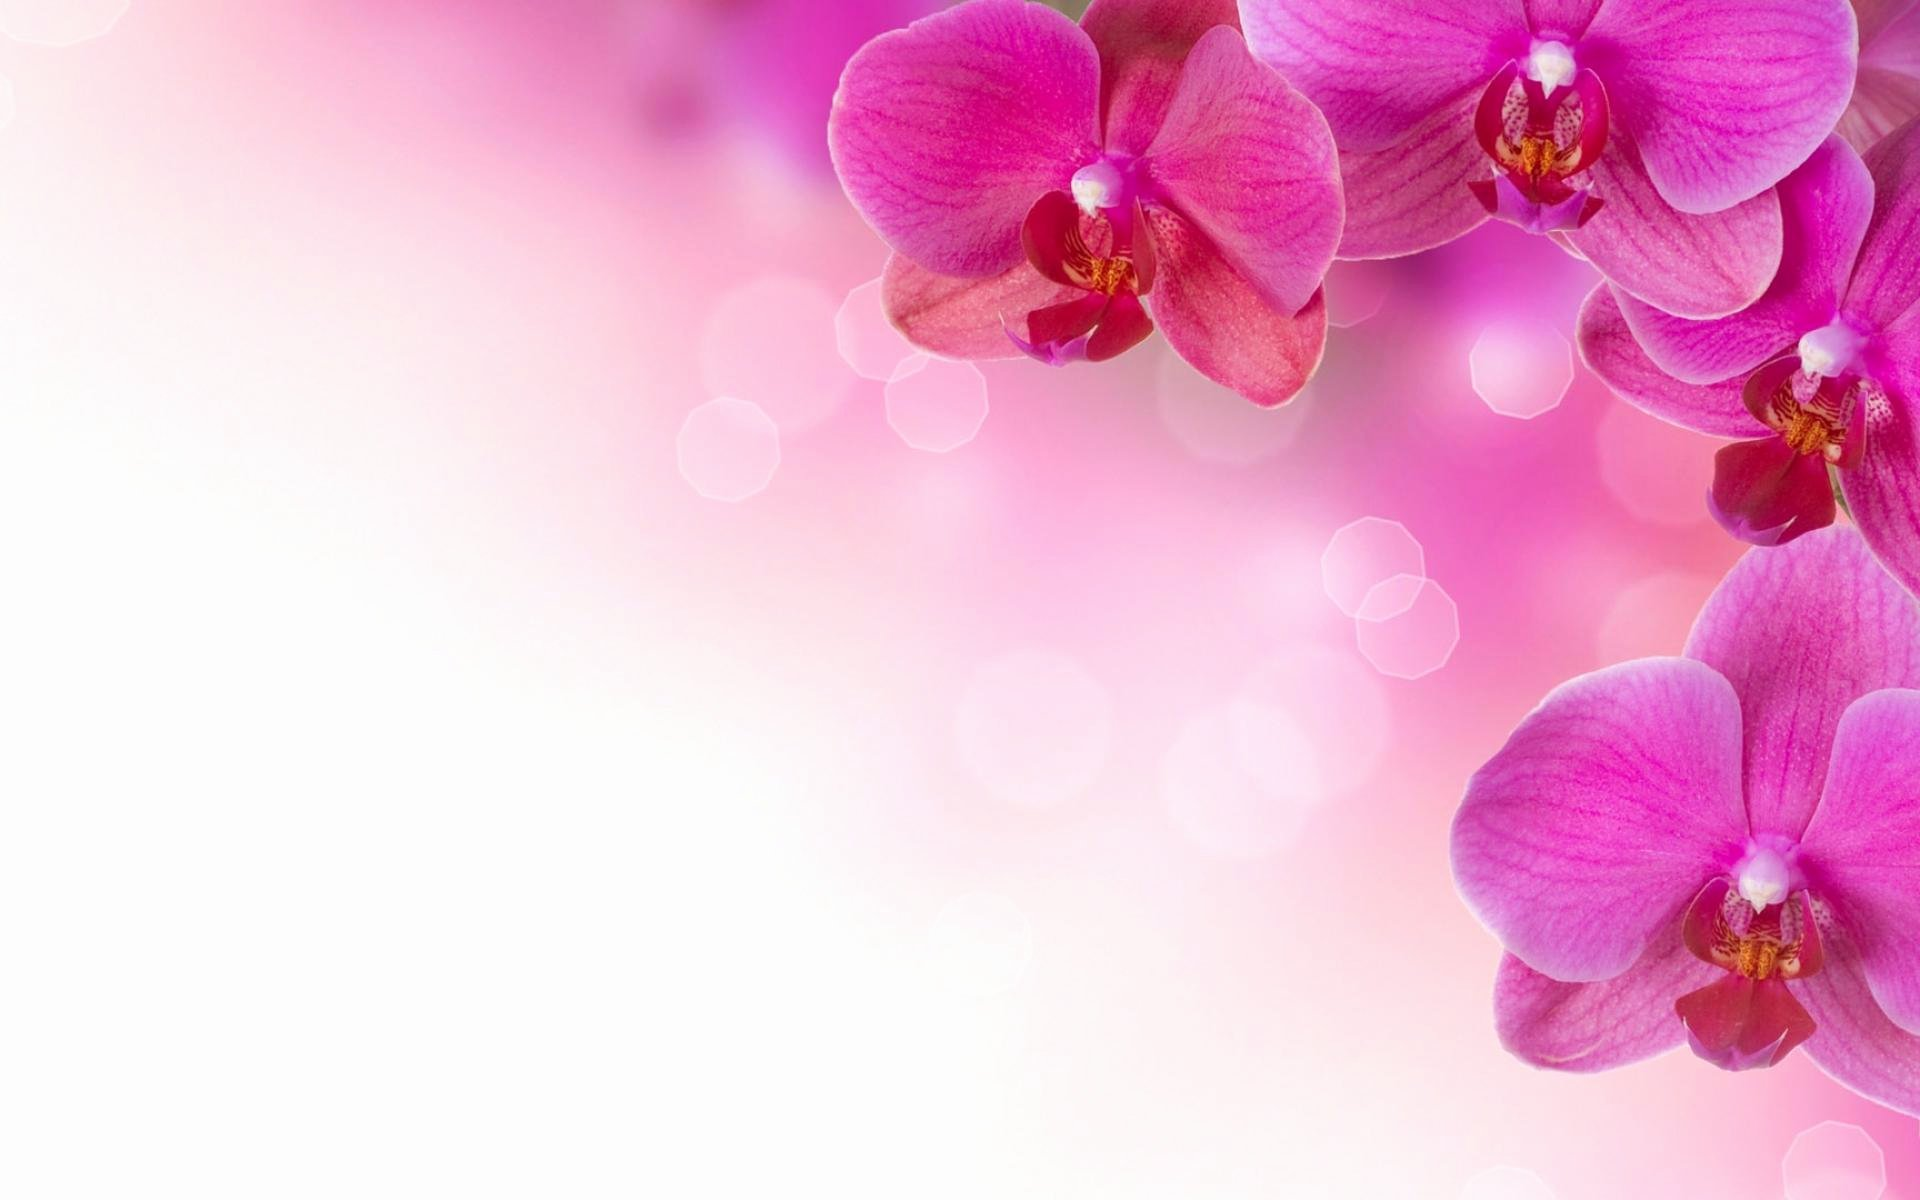 Flower Background Design Images Elegant Pink Flower Backgrounds Wallpaper Cave